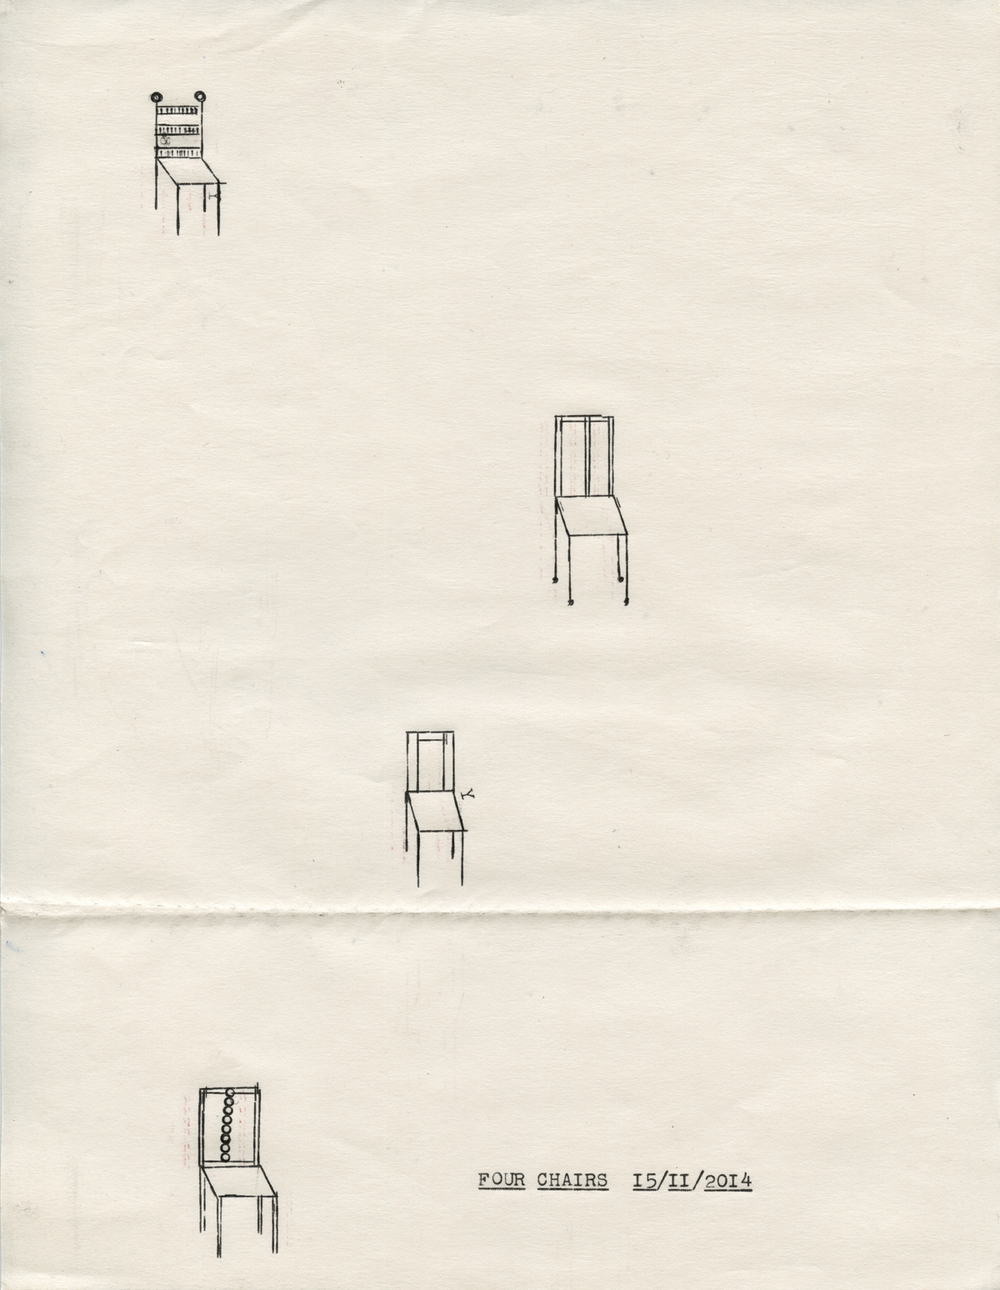 2014_15_typewriter_drawing.jpg